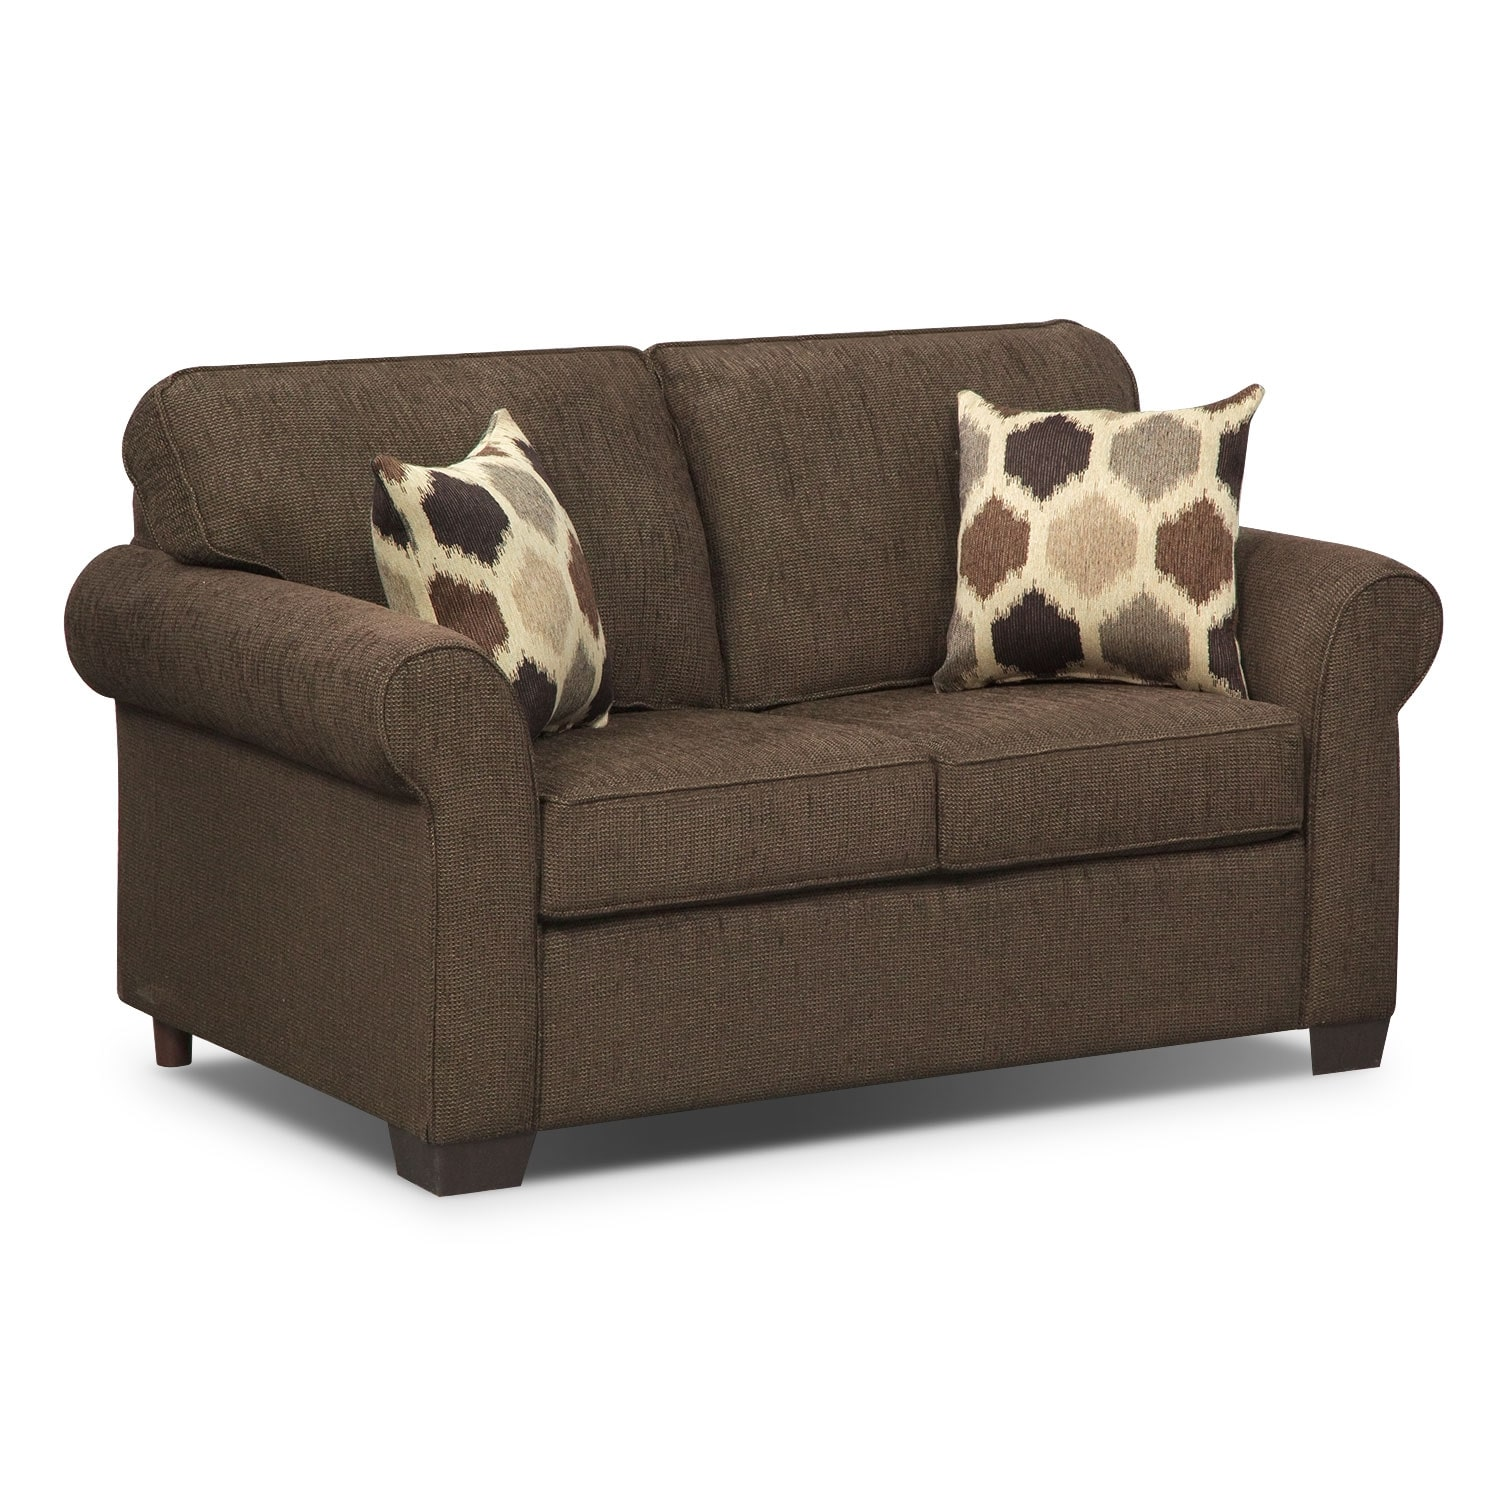 Fletcher Twin Memory Foam Sleeper Sofa Chocolate Value